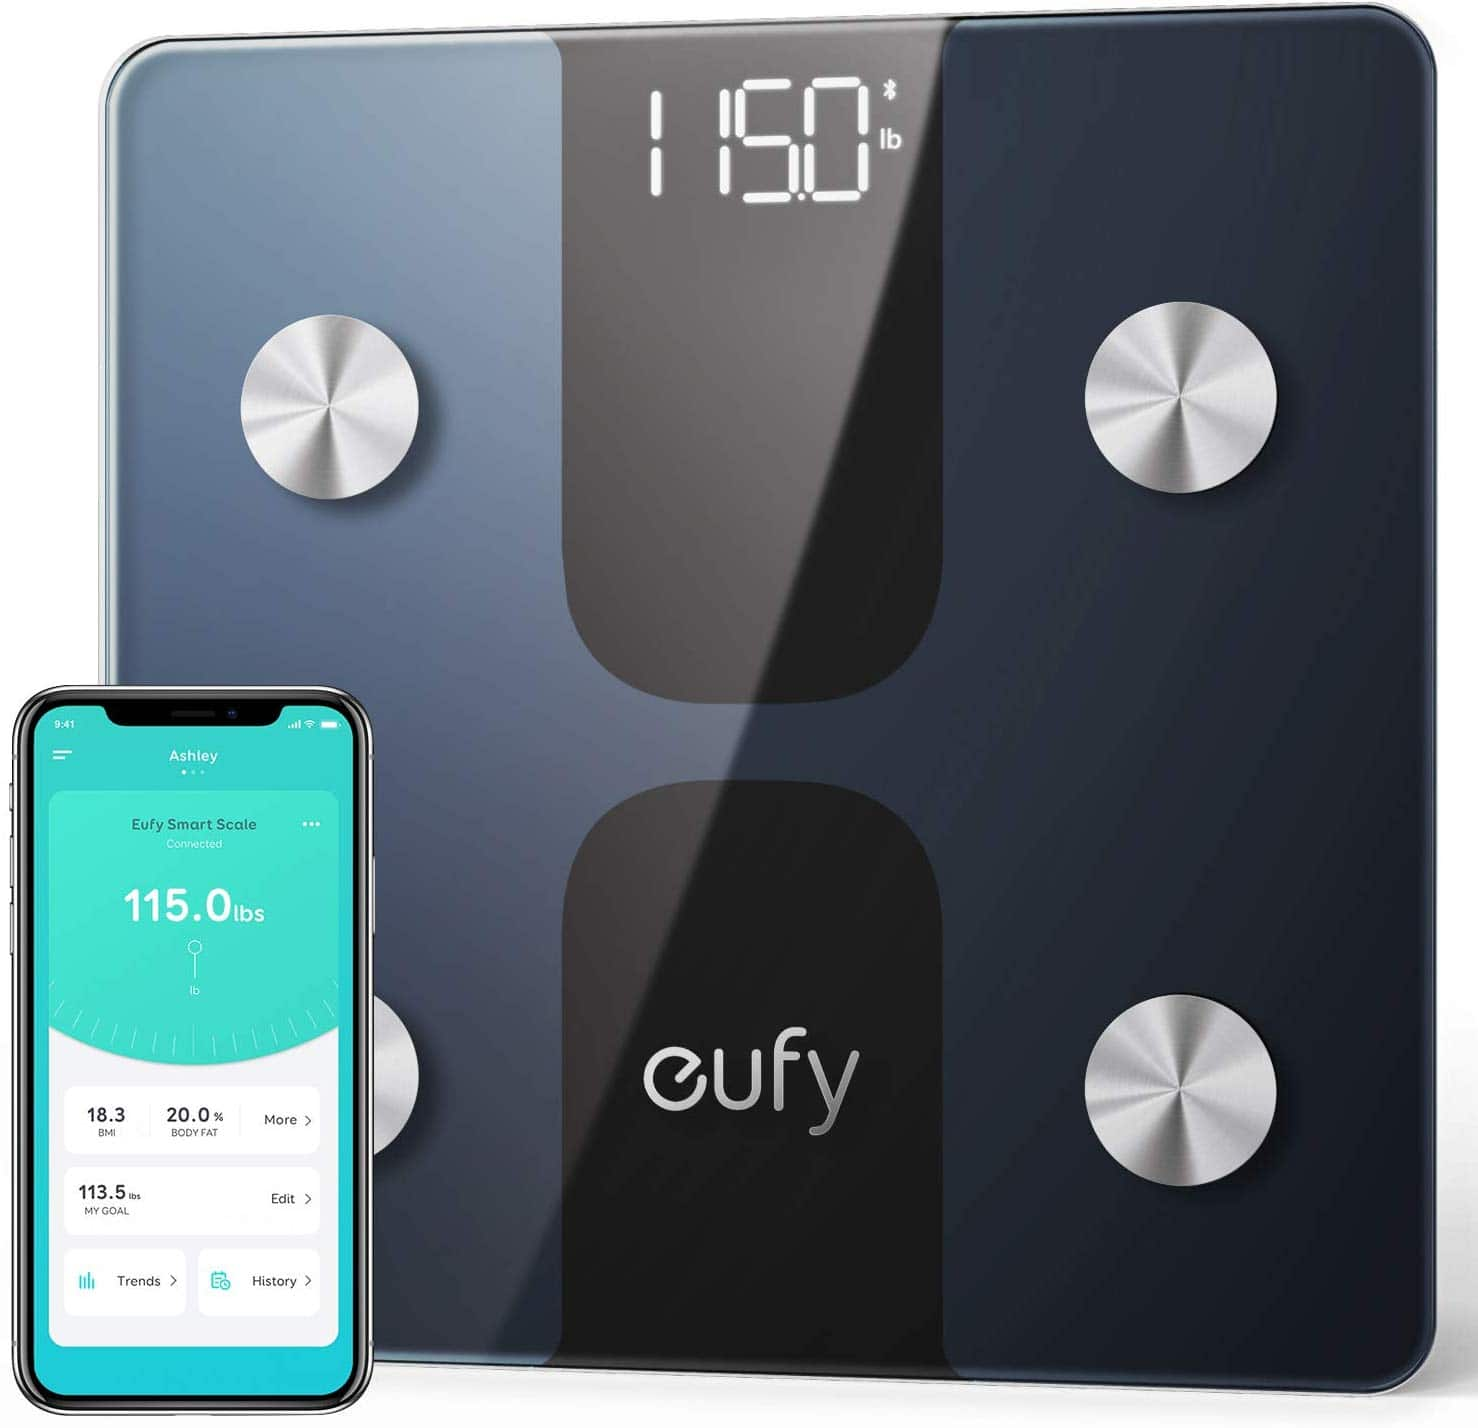 33% Off Eufy Smart Scale C1 Digital Bathroom Body Scale with Bluetooth 4.2 - $19.99 and More + FSSS